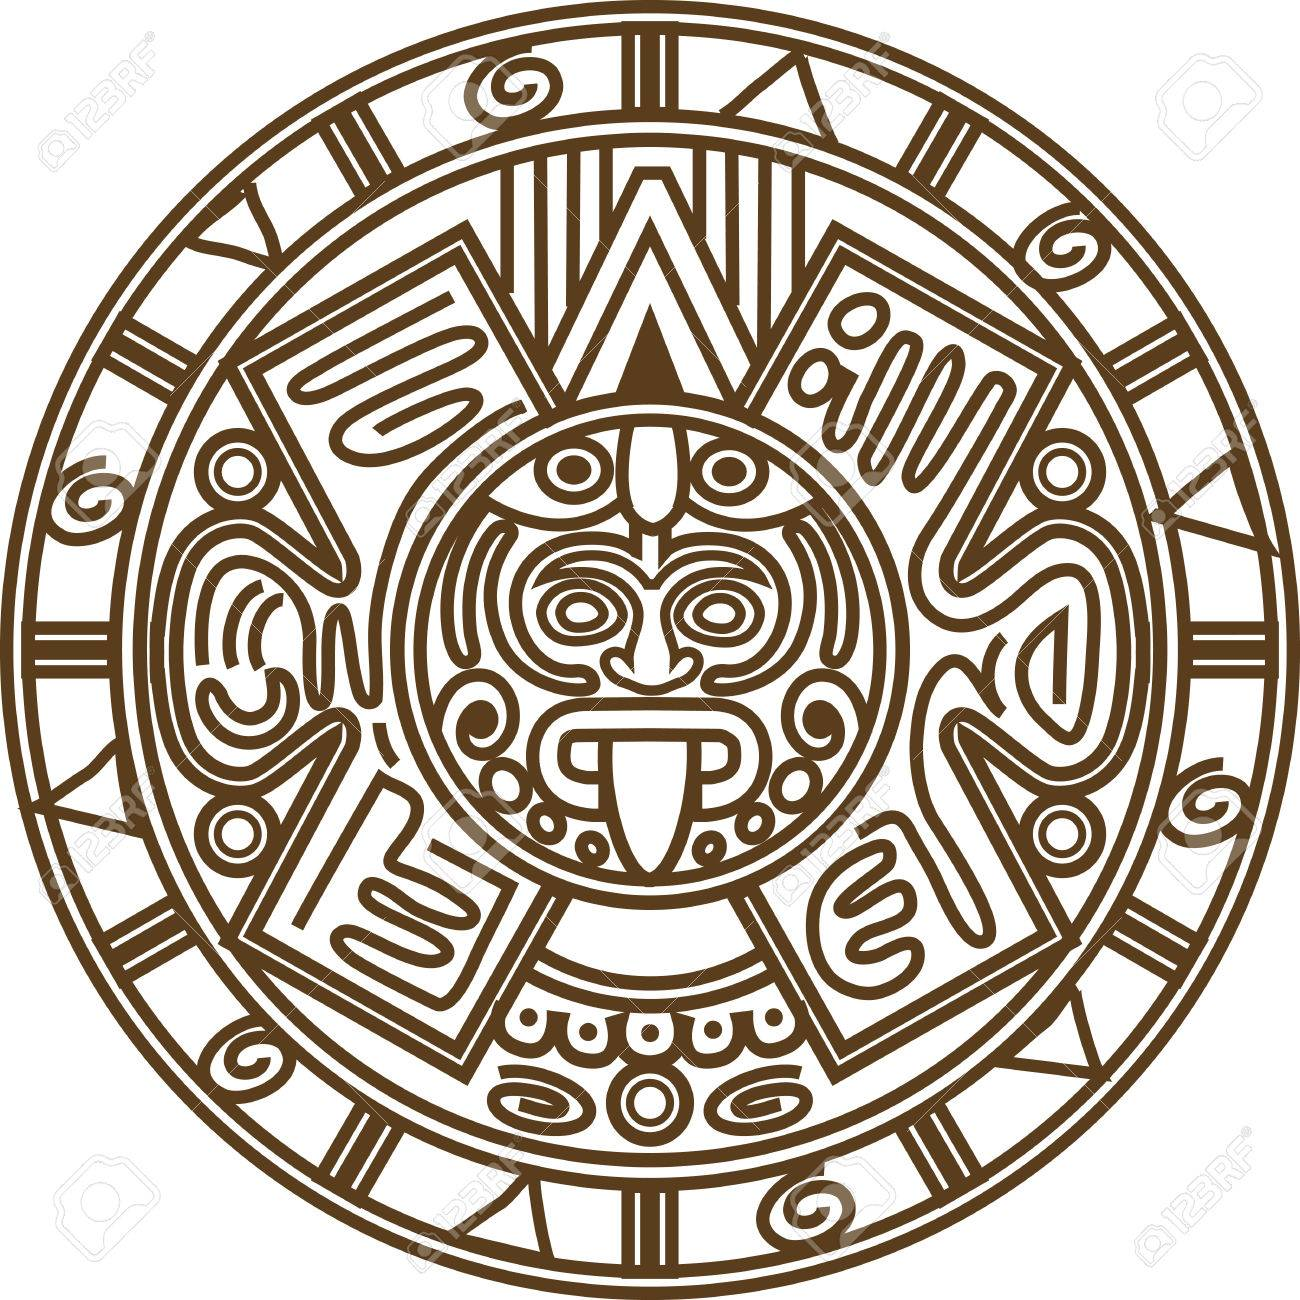 1300x1300 Vector Illustration Stylized Image Of Ancient Mayan Calendar